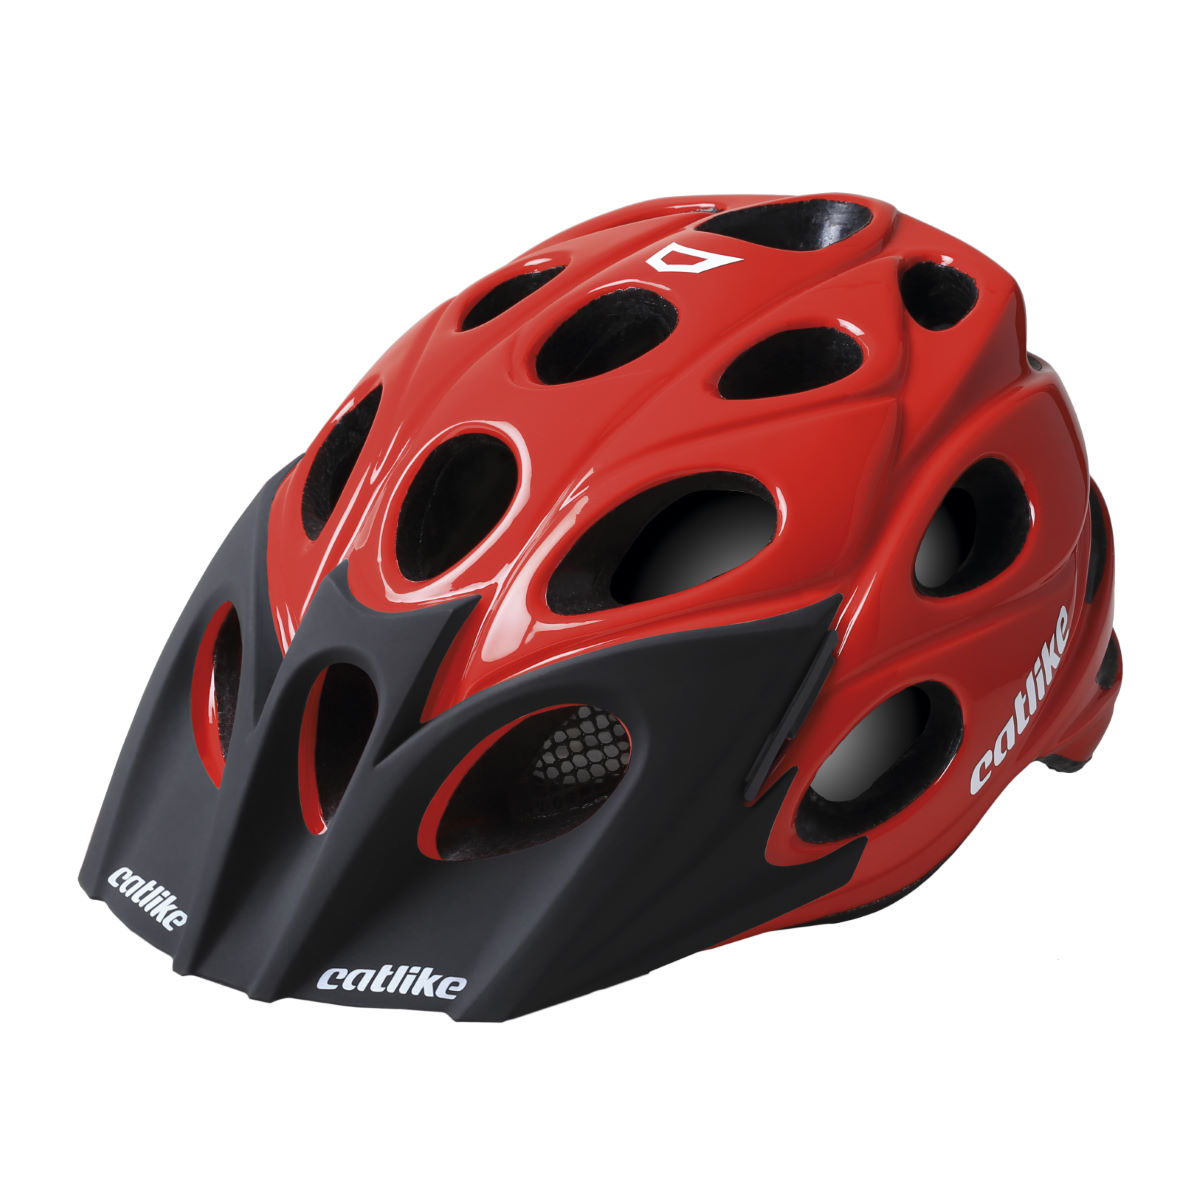 Casque VTT Catlike Leaf - M Red Glossy Casques